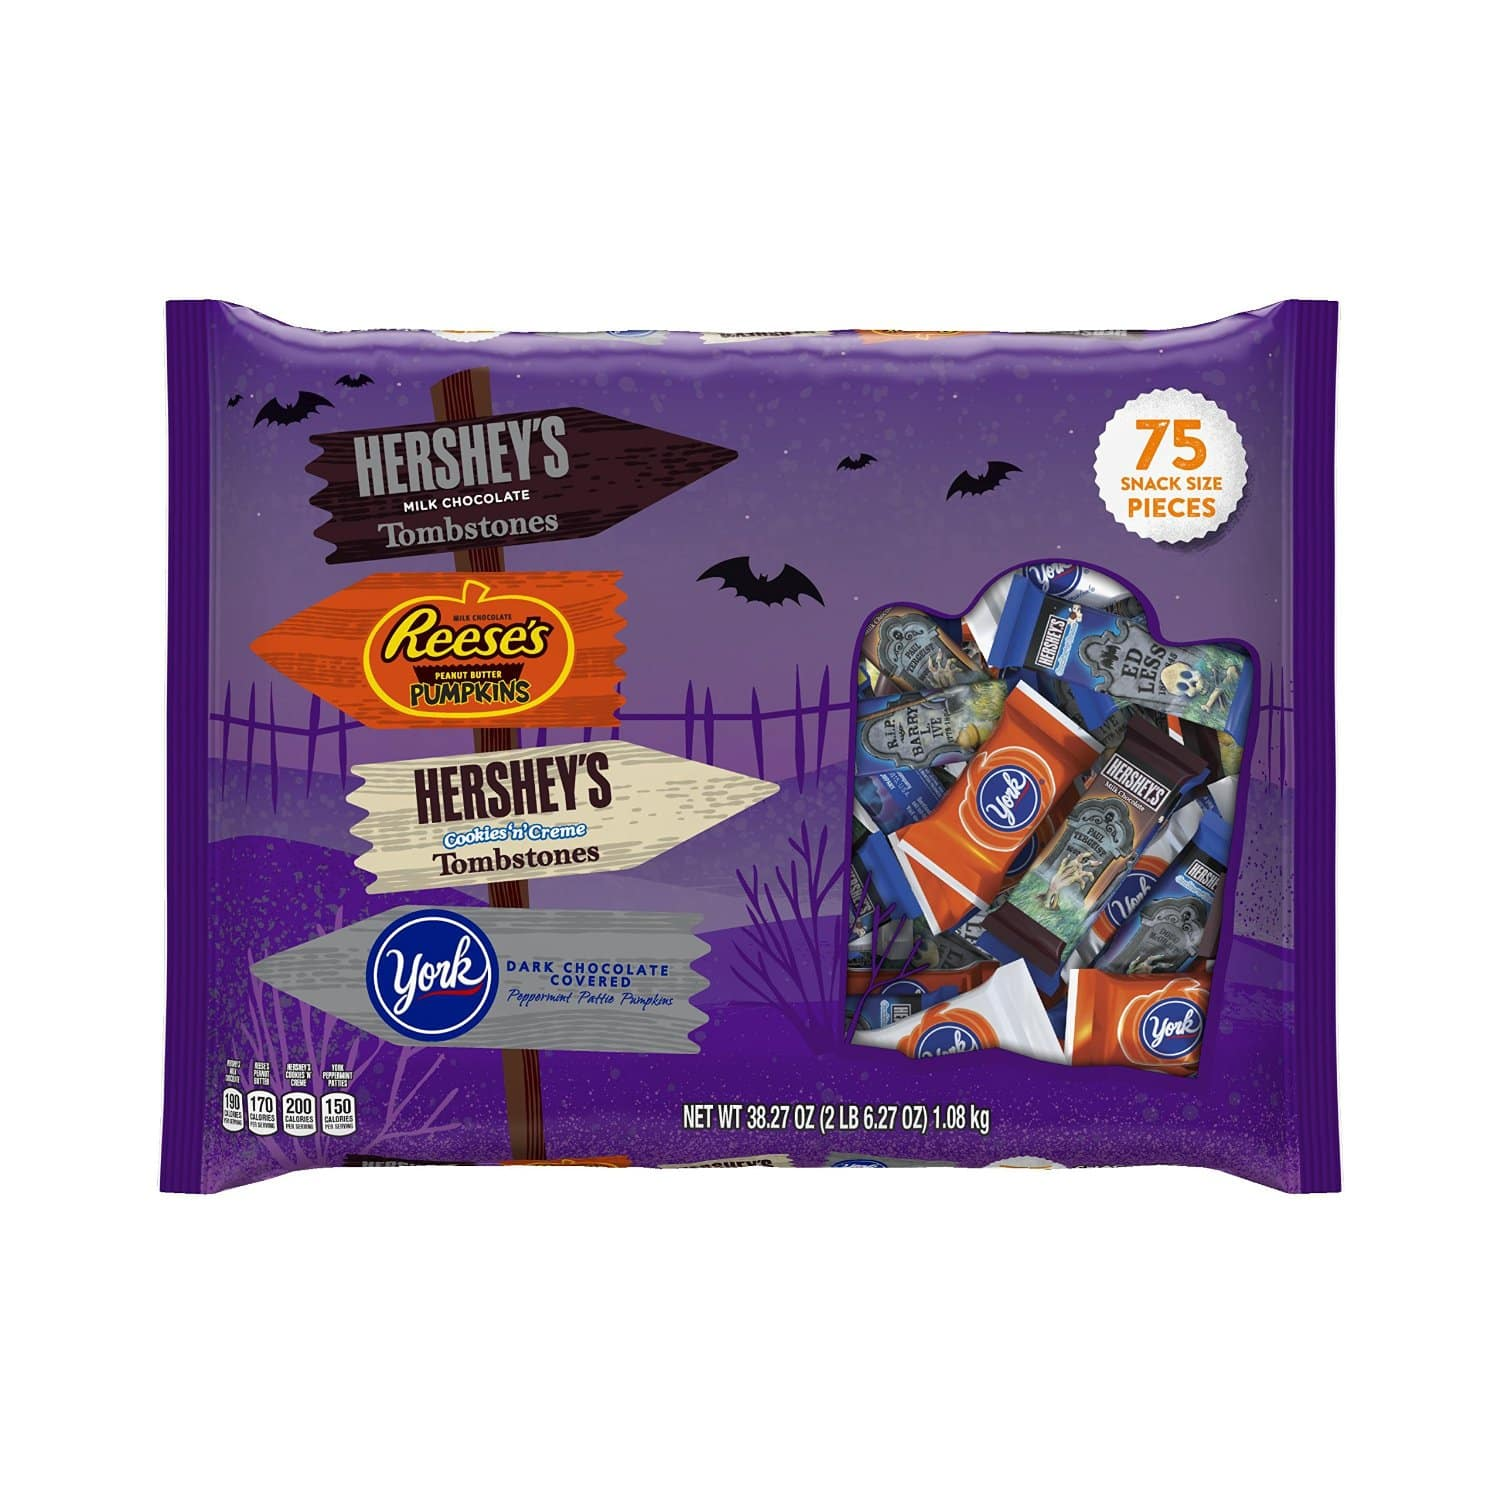 HERSHEY'S Halloween Snack Size Assortment (38.27-Ounce Bag, 75 Pieces) $8.45 at amazon.com